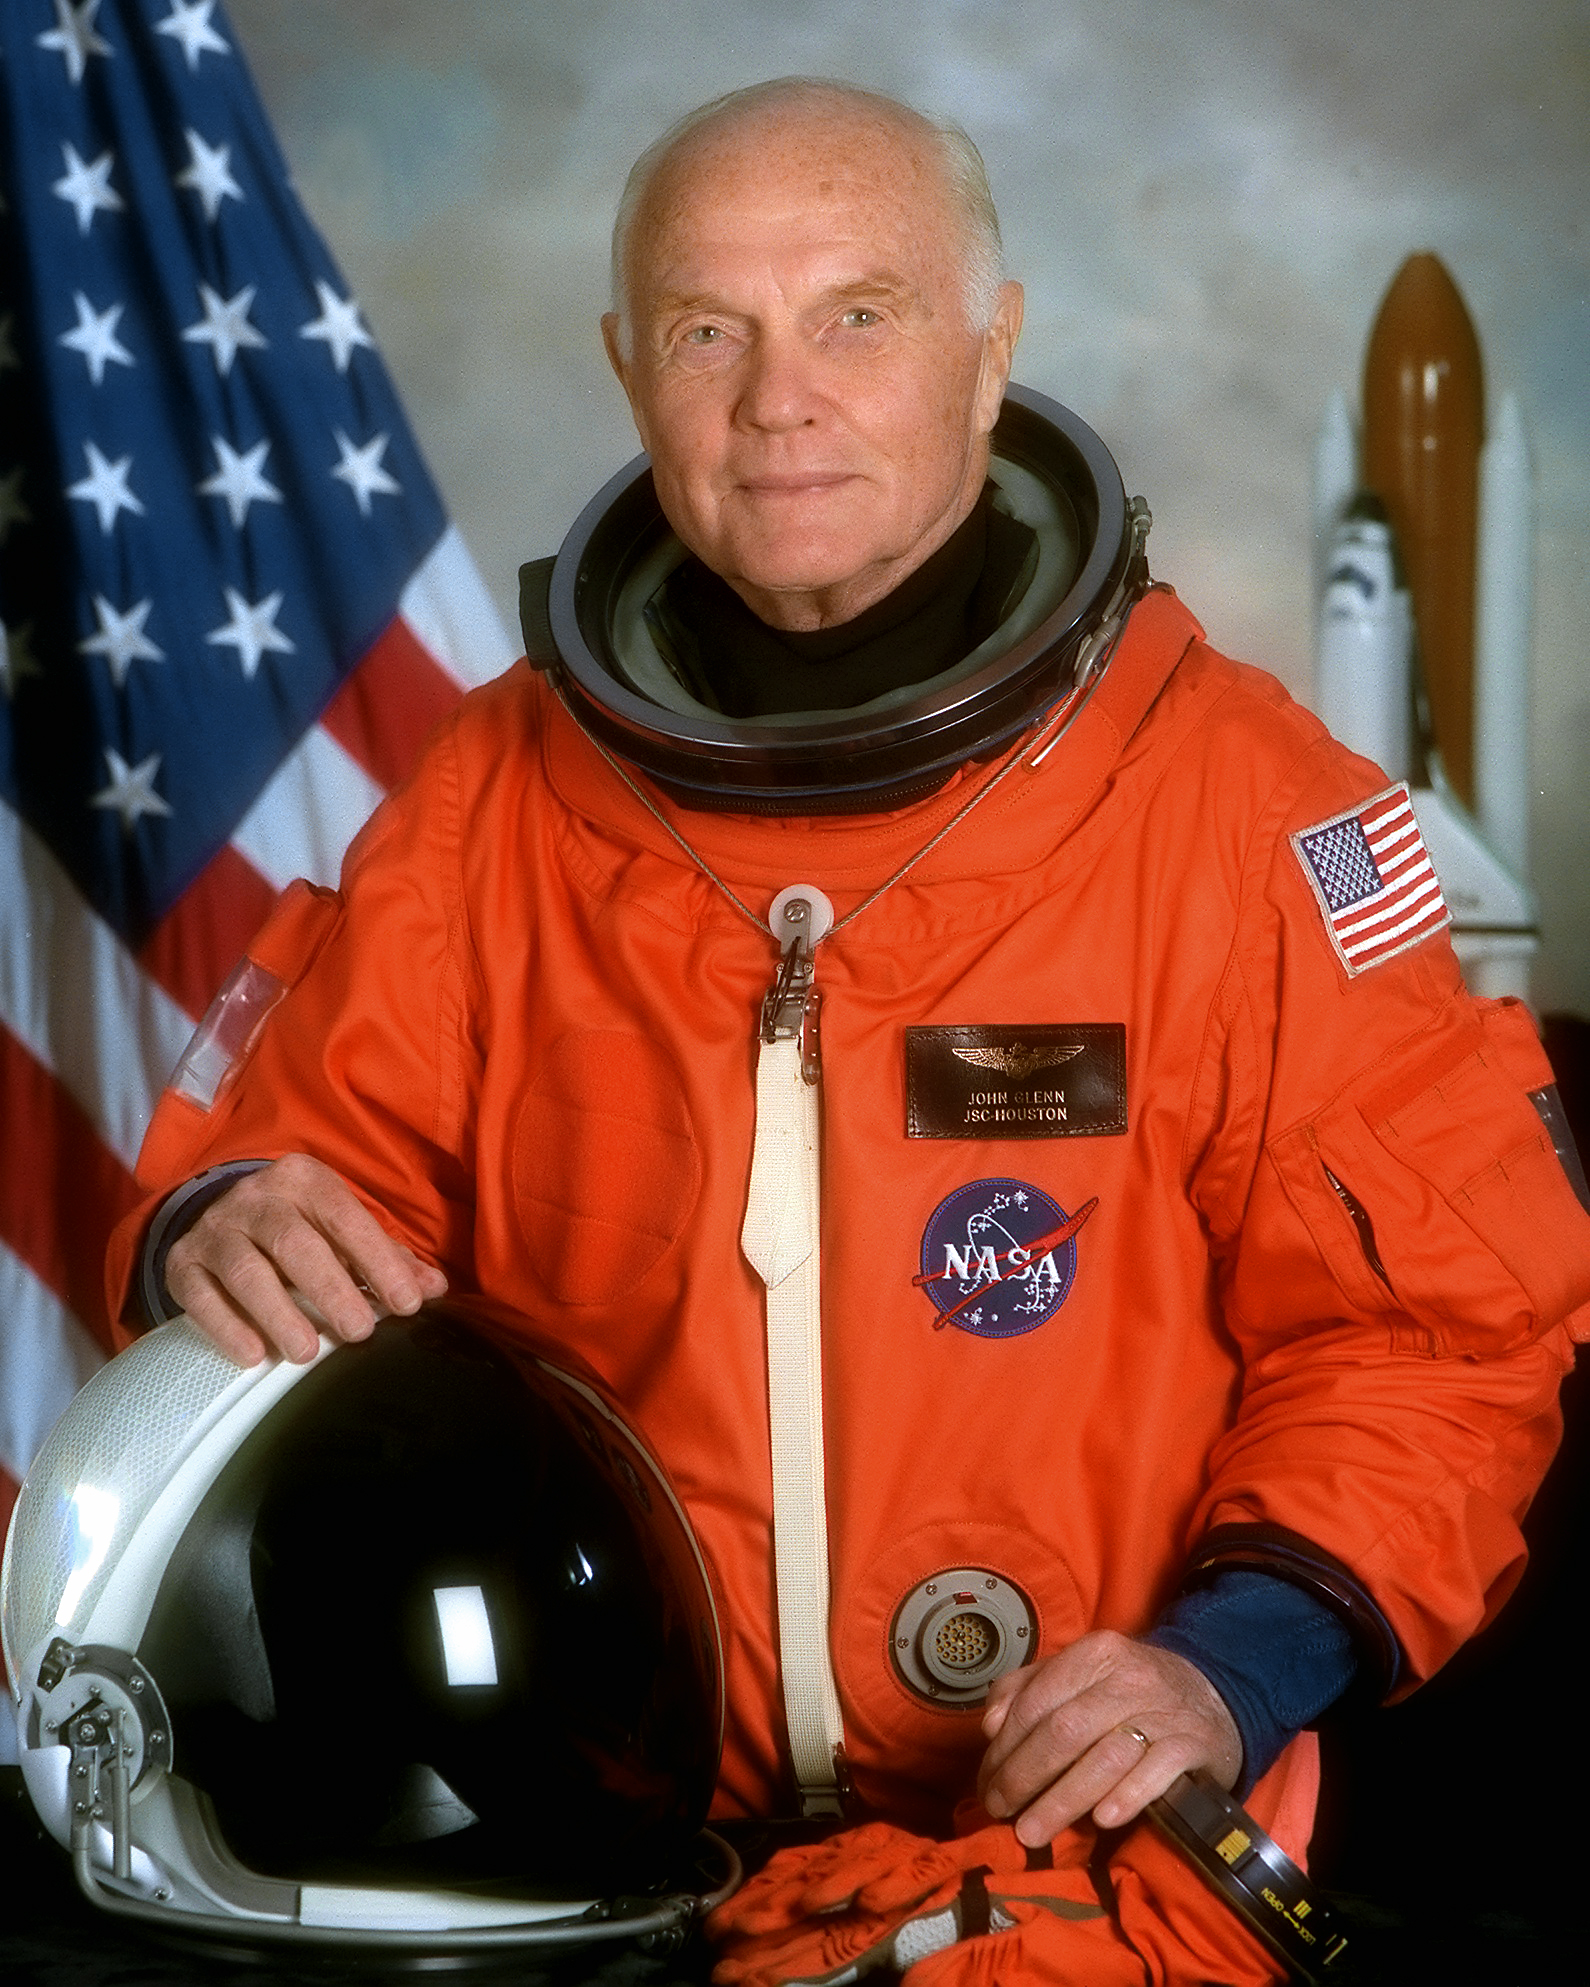 quote by John Glenn